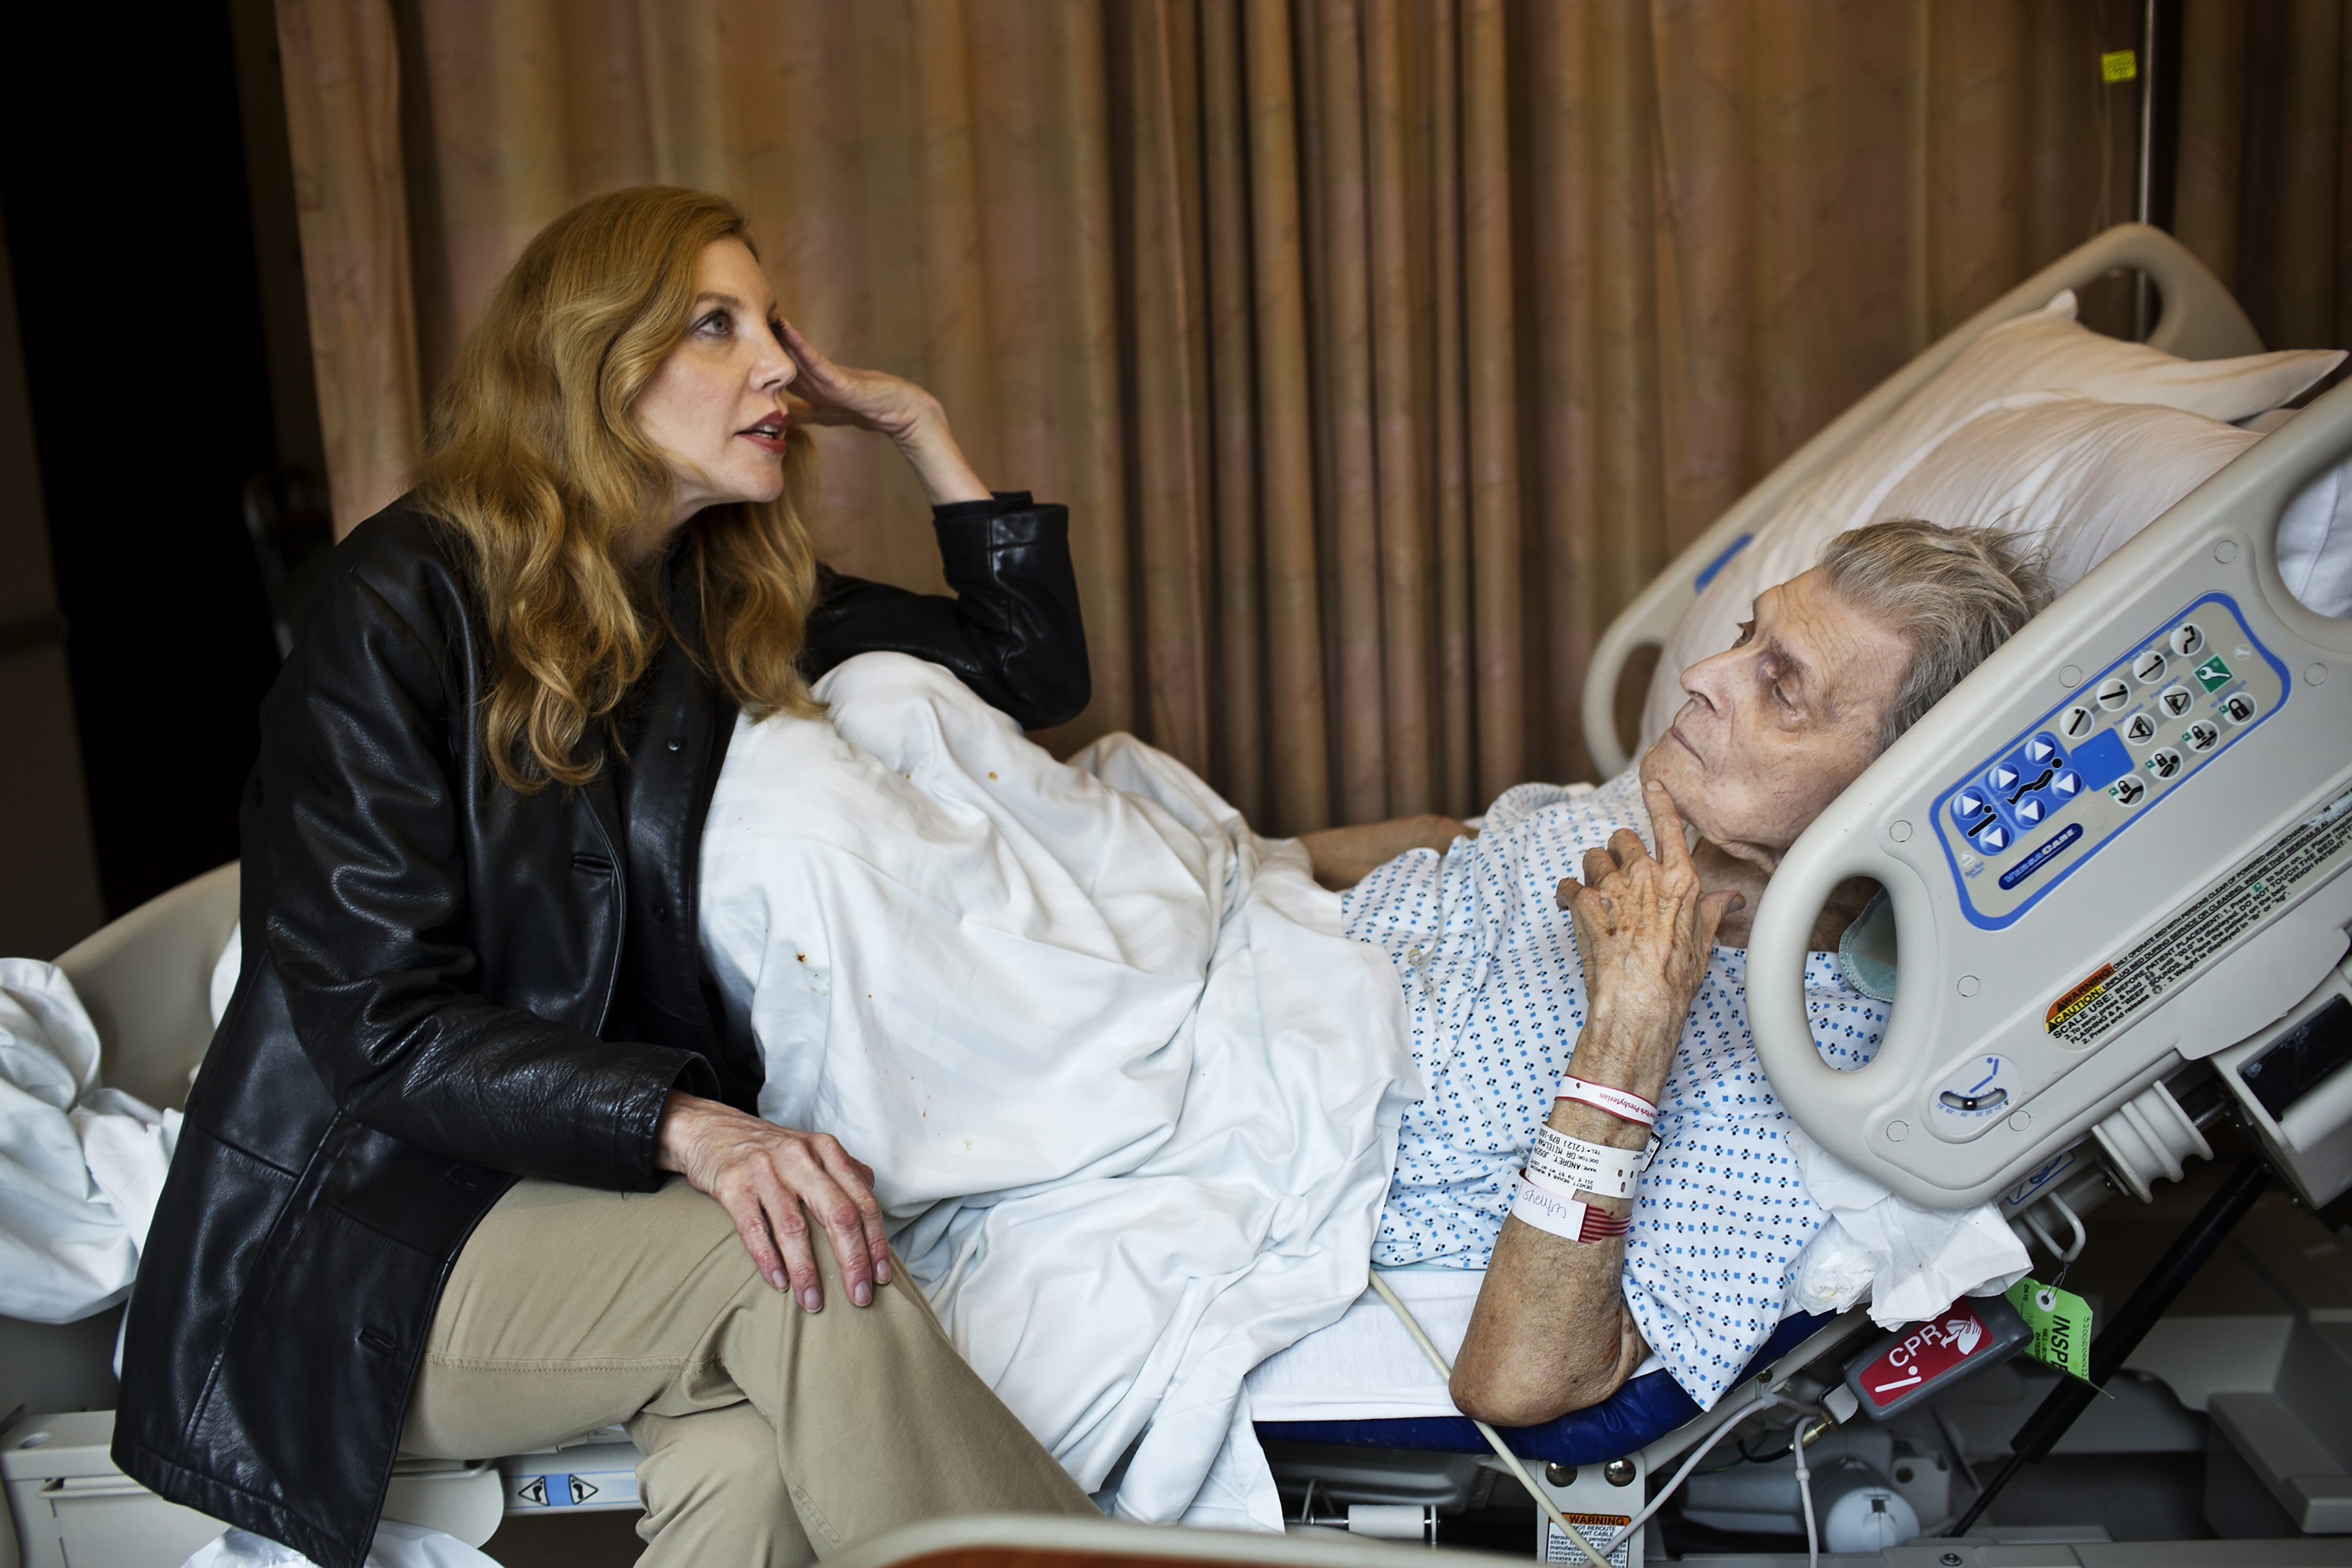 A woman visits with her father in New York Presbyterian Hospital, prior to his being moved to a nursing home in 2013. End-of-life care remains an issue of concern for many New Yorkers.